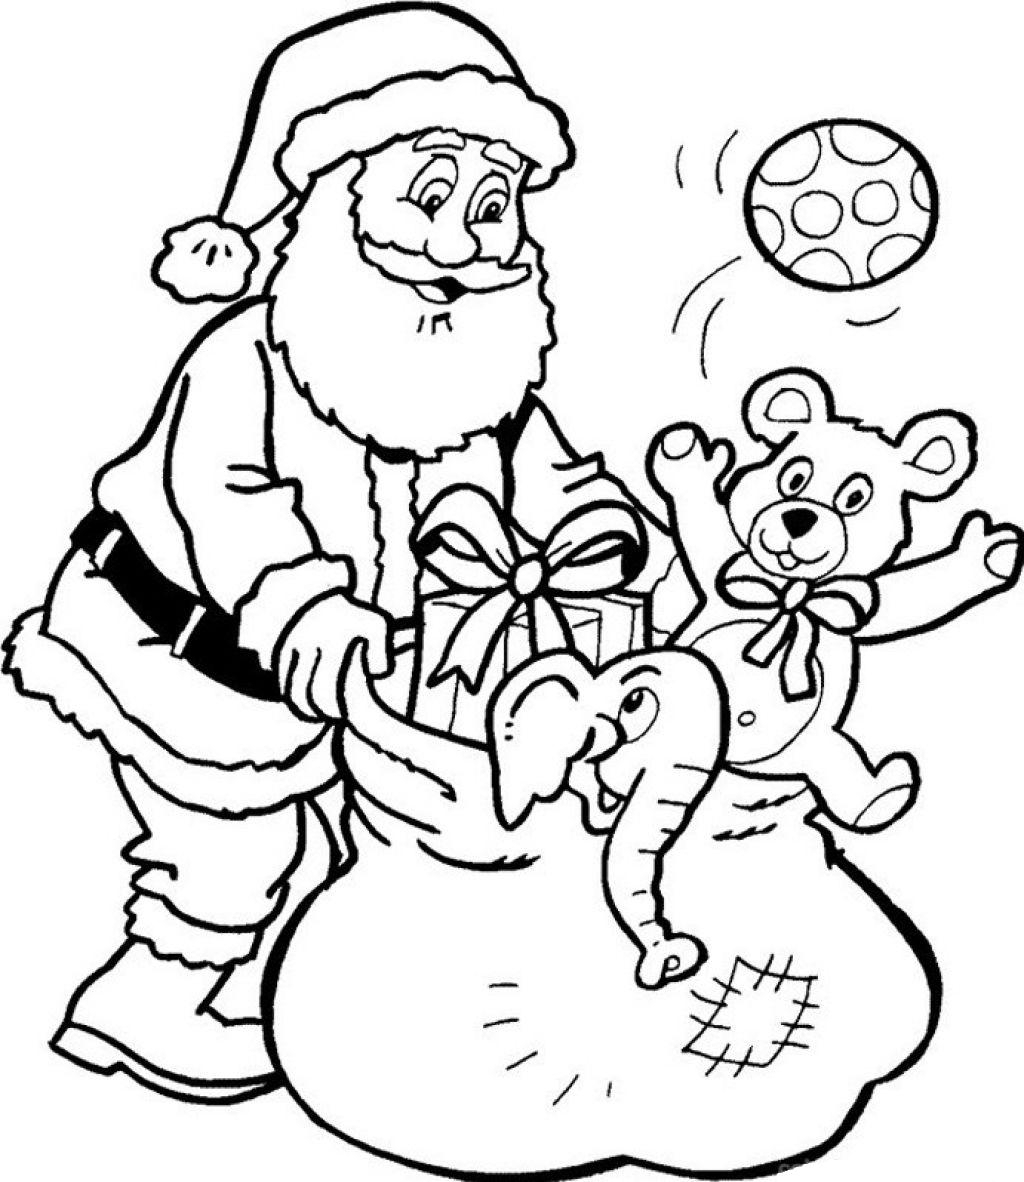 Santa Claus Coloring Page With Awesome Cartoon Pages Design Printable